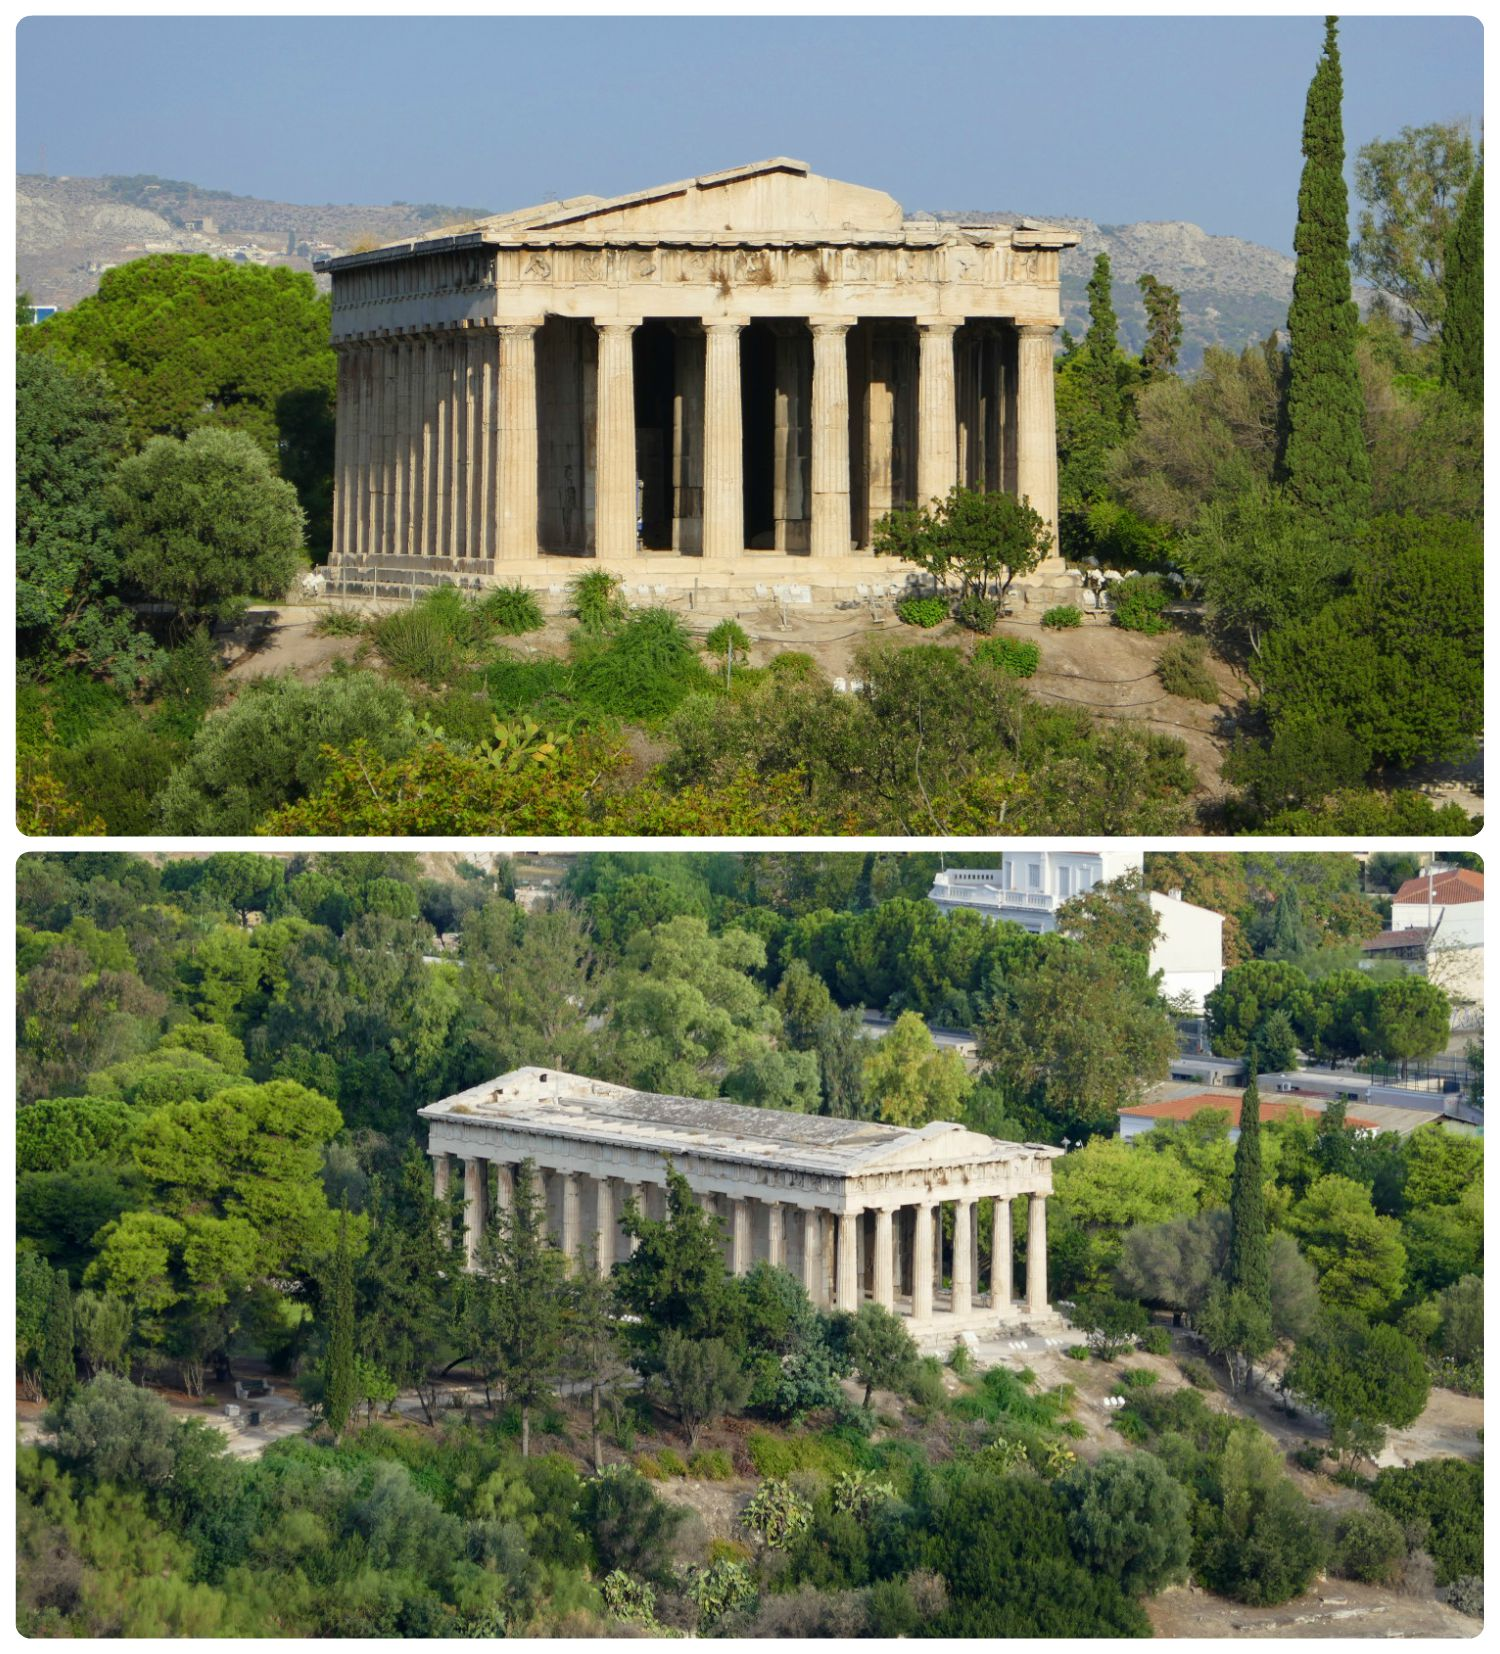 Hephaestus Temple is located within the Ancient Agora of Athens.